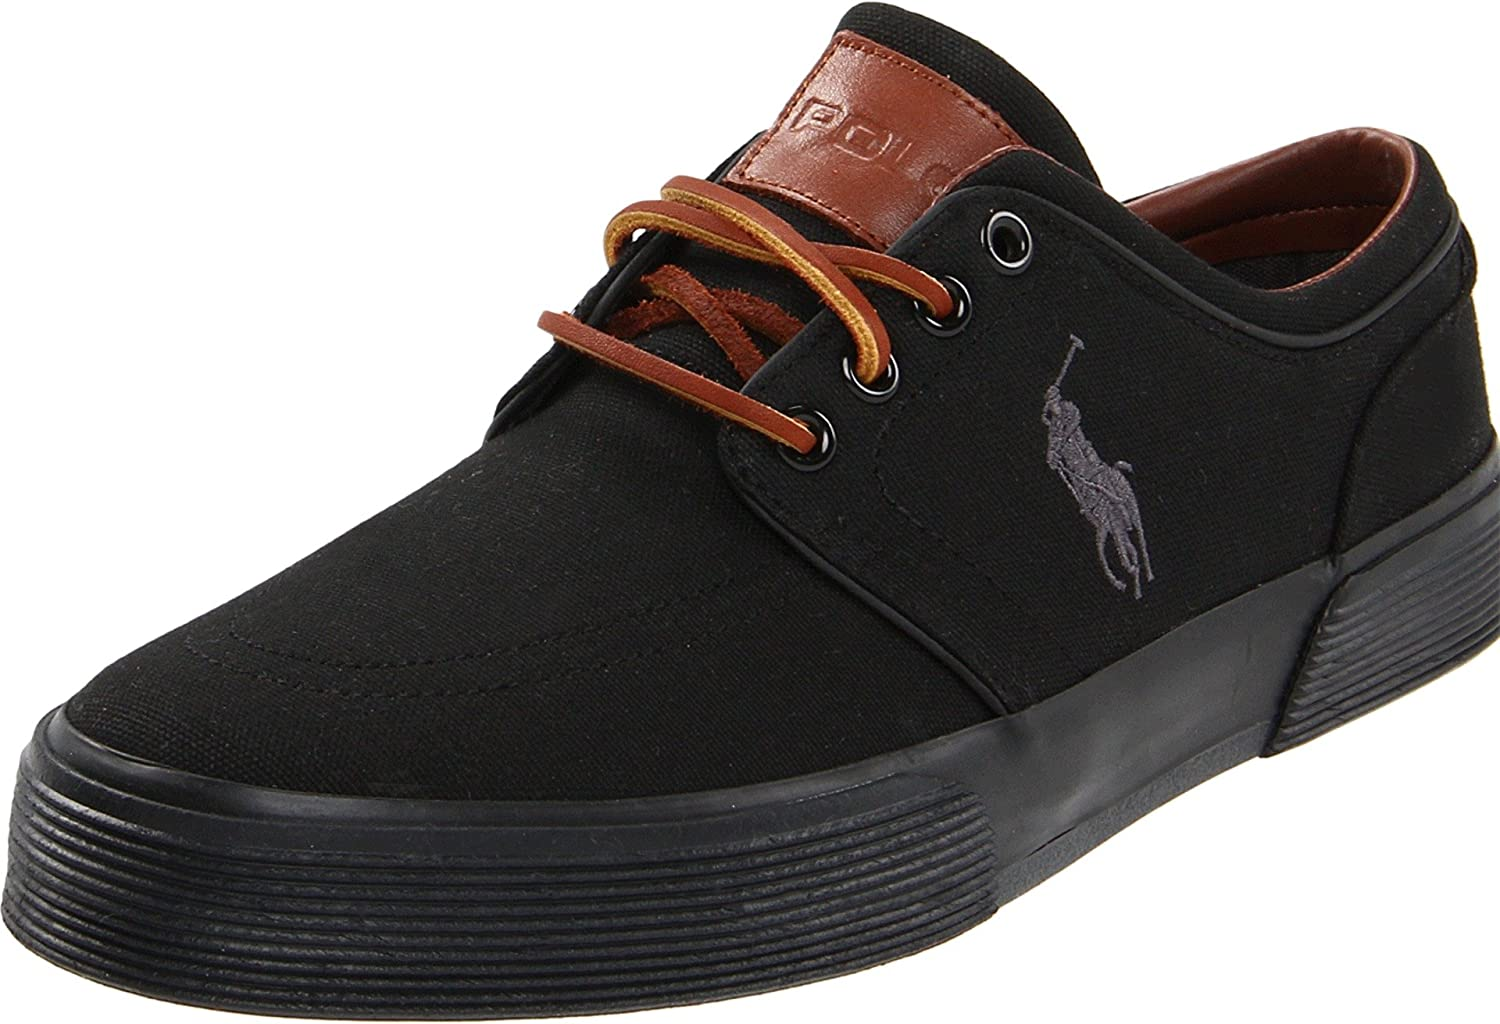 Ralph Lauren Faxon Low Sneaker Black Black Canvas 15 D(M) US  Buy Online at  Low Prices in India - Amazon.in 06b7707f6df